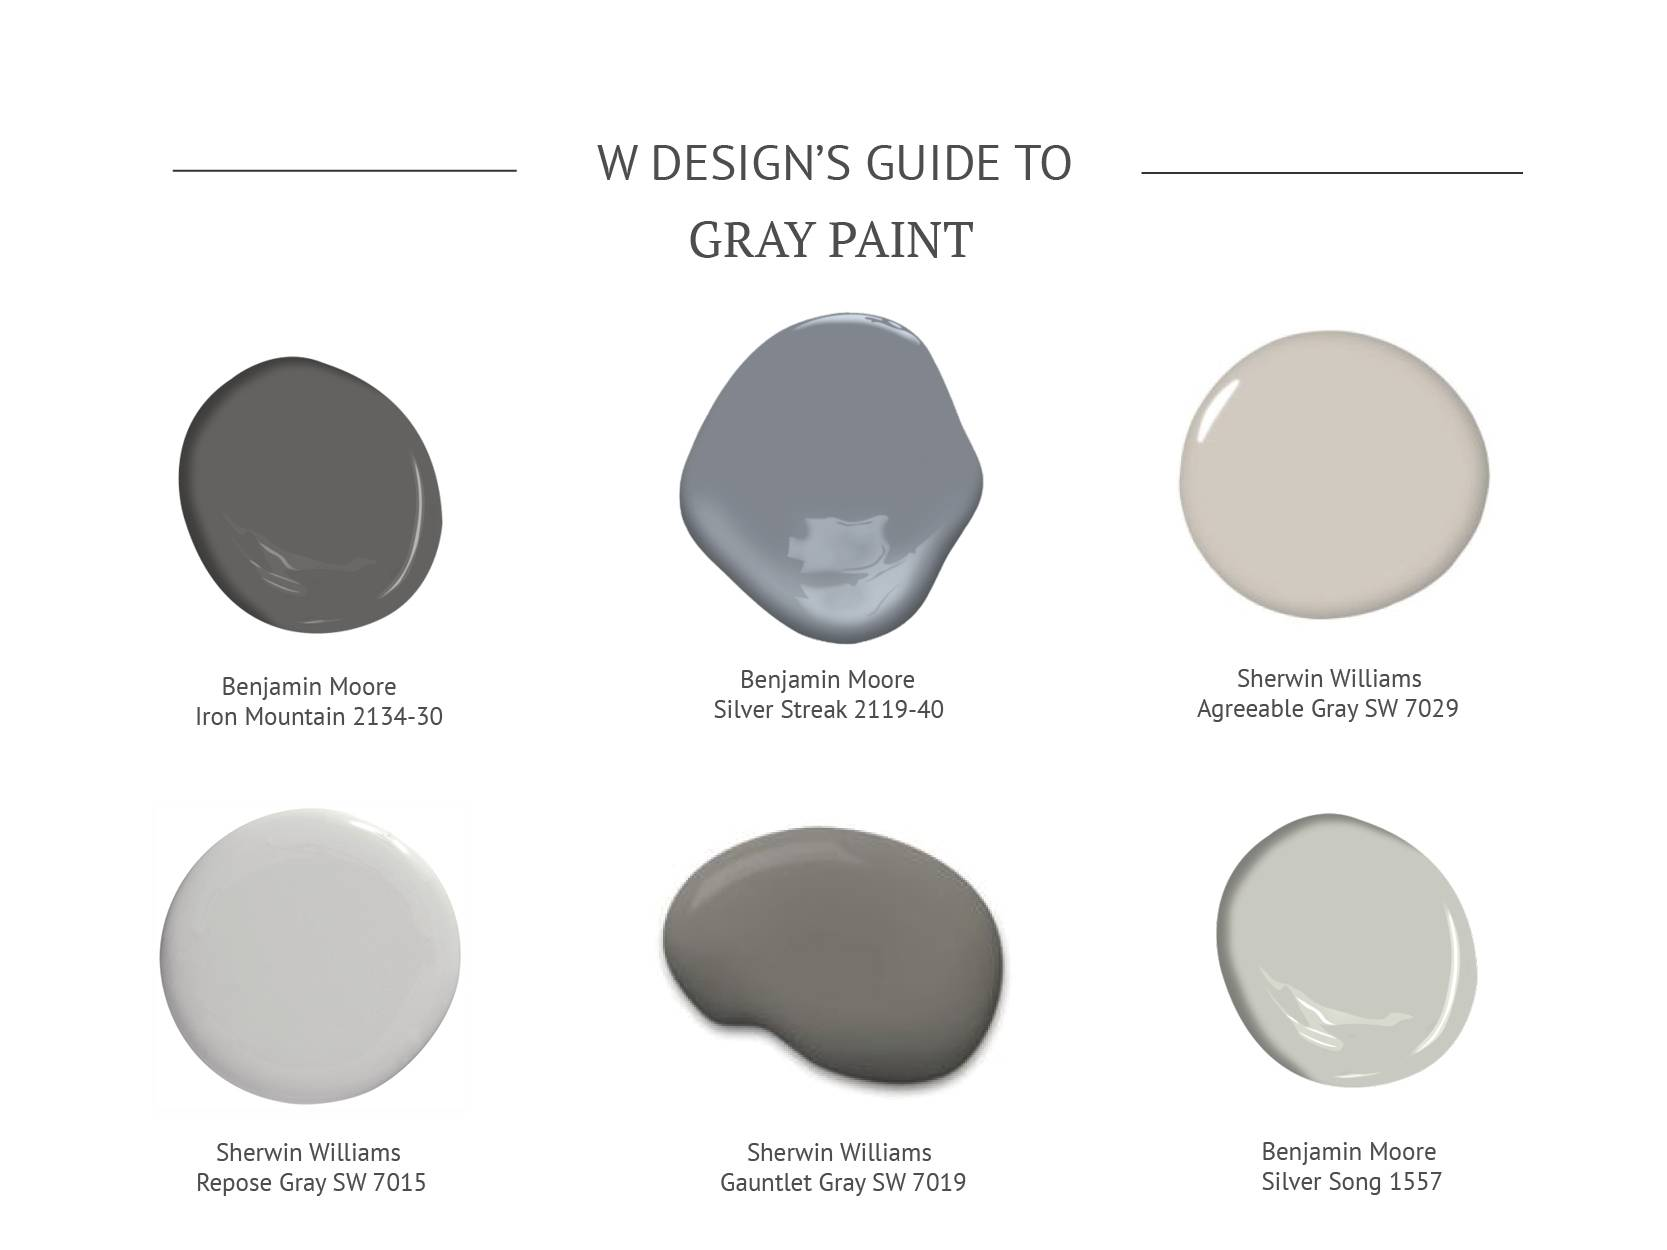 Guide to Gray Paint